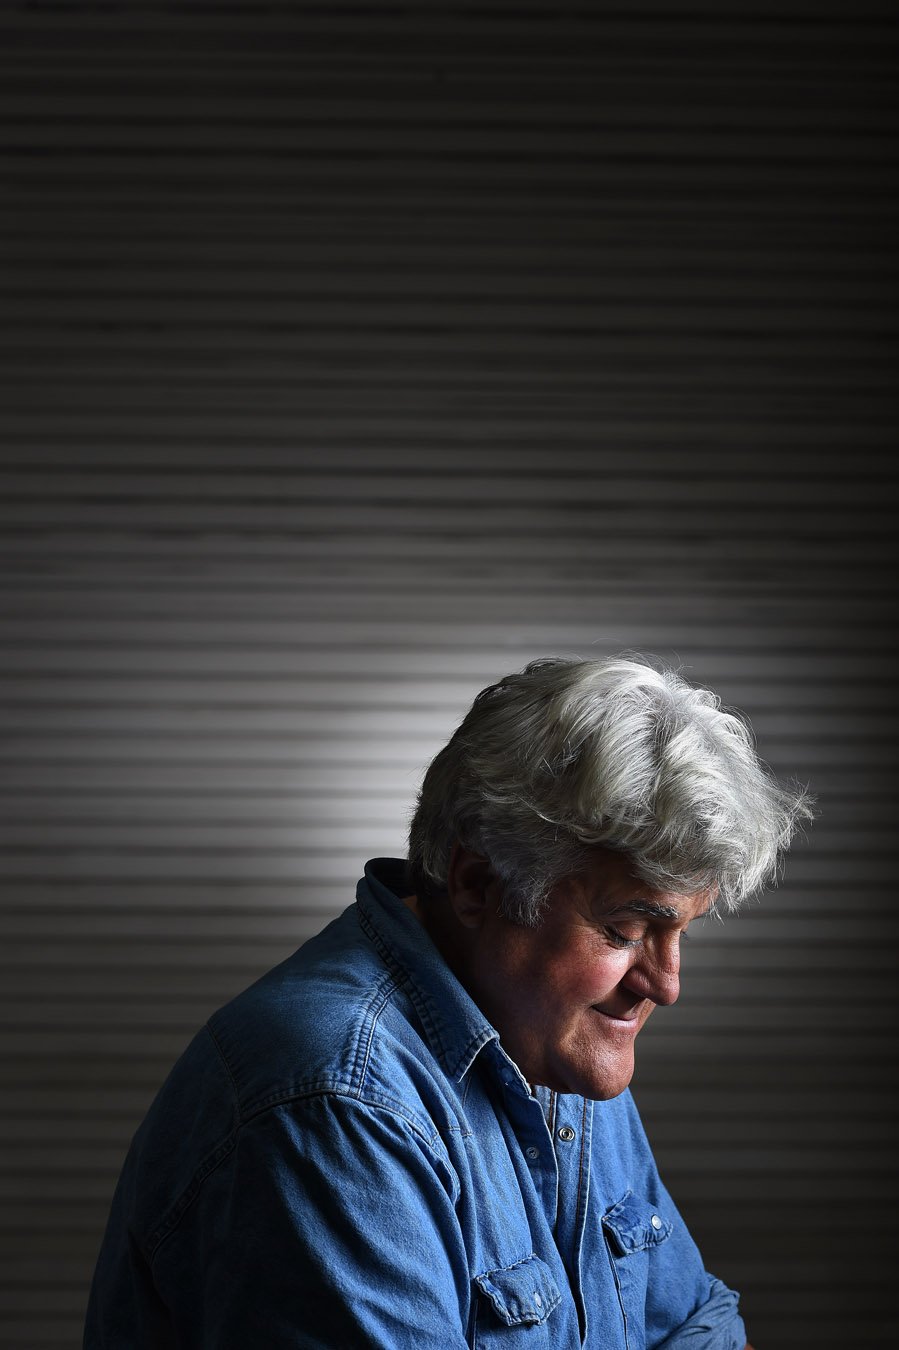 Jay Leno poses for a portrait at his car garage on Wenesday September 24, 2014 in Burbank, CA.  The longtime host of The Tonight Show, continues to tour extensively performing comedy.  Leno is going to be the next recipient of the Mark Twain Prize for American Humor.  (Photo by Matt McClain/ The Washington Post)